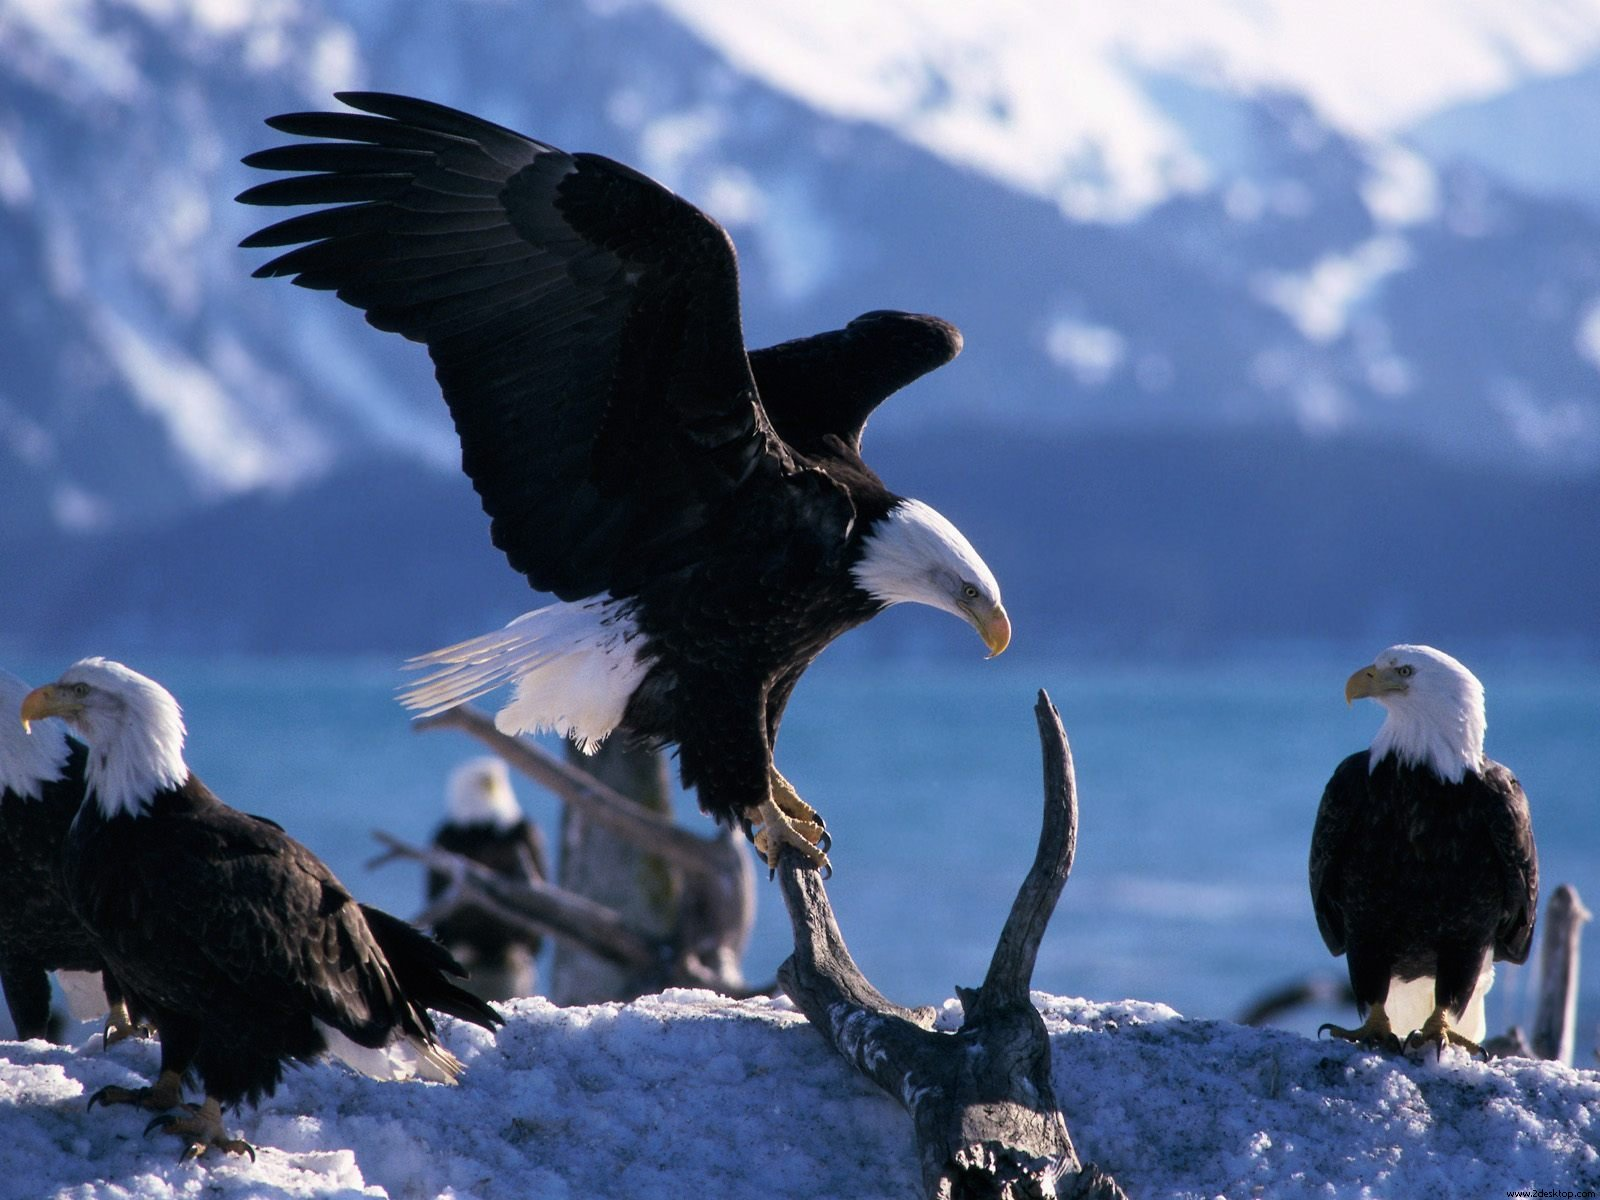 Wings Extended Bald Eagles 774.02 Kb